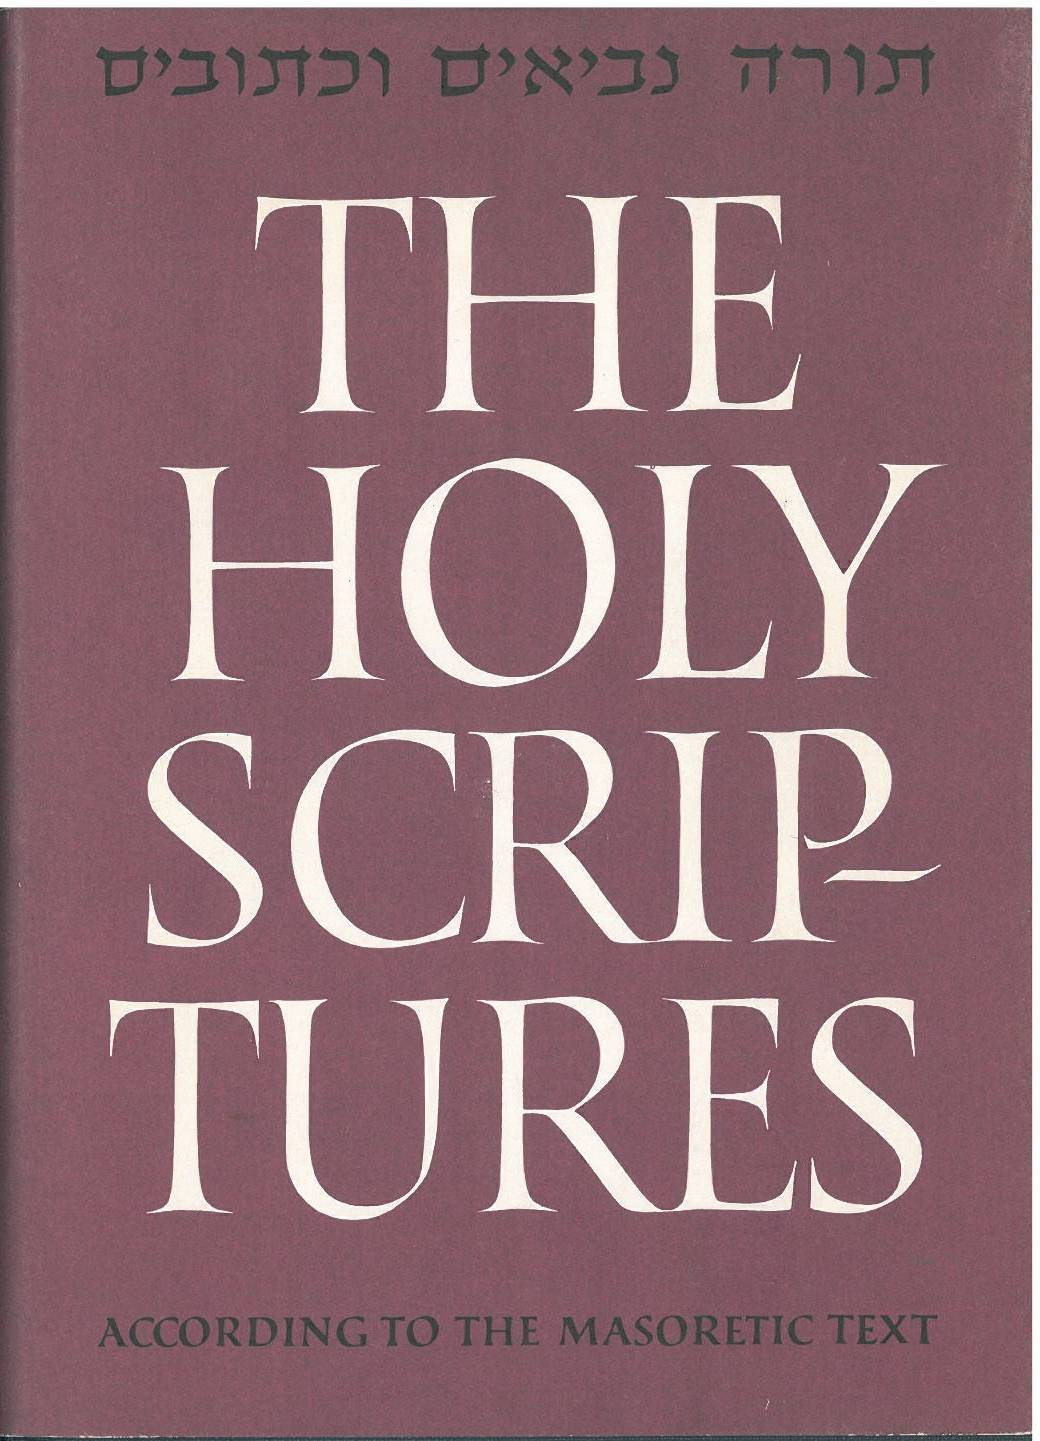 jewish publication society - 1917 holy scriptures